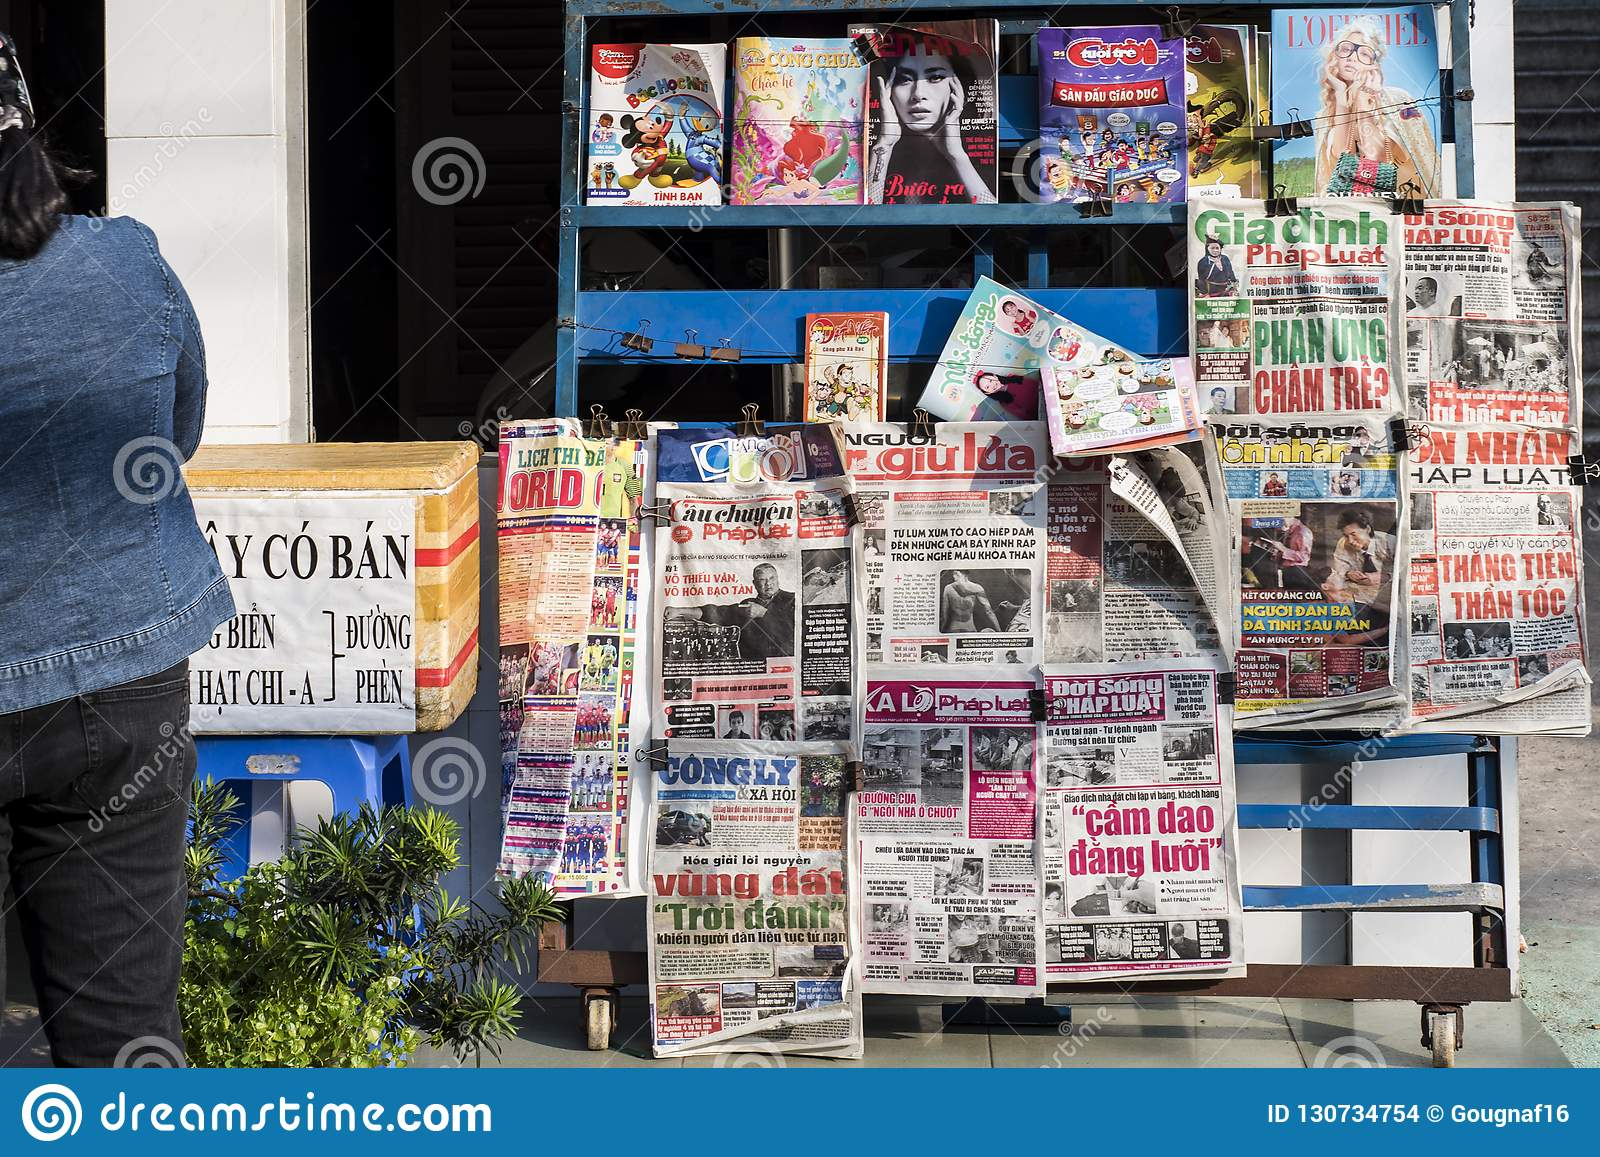 Vietnamese newspapers and magazines on a stand in a street of Ho Chi Minh City in Vietnam.